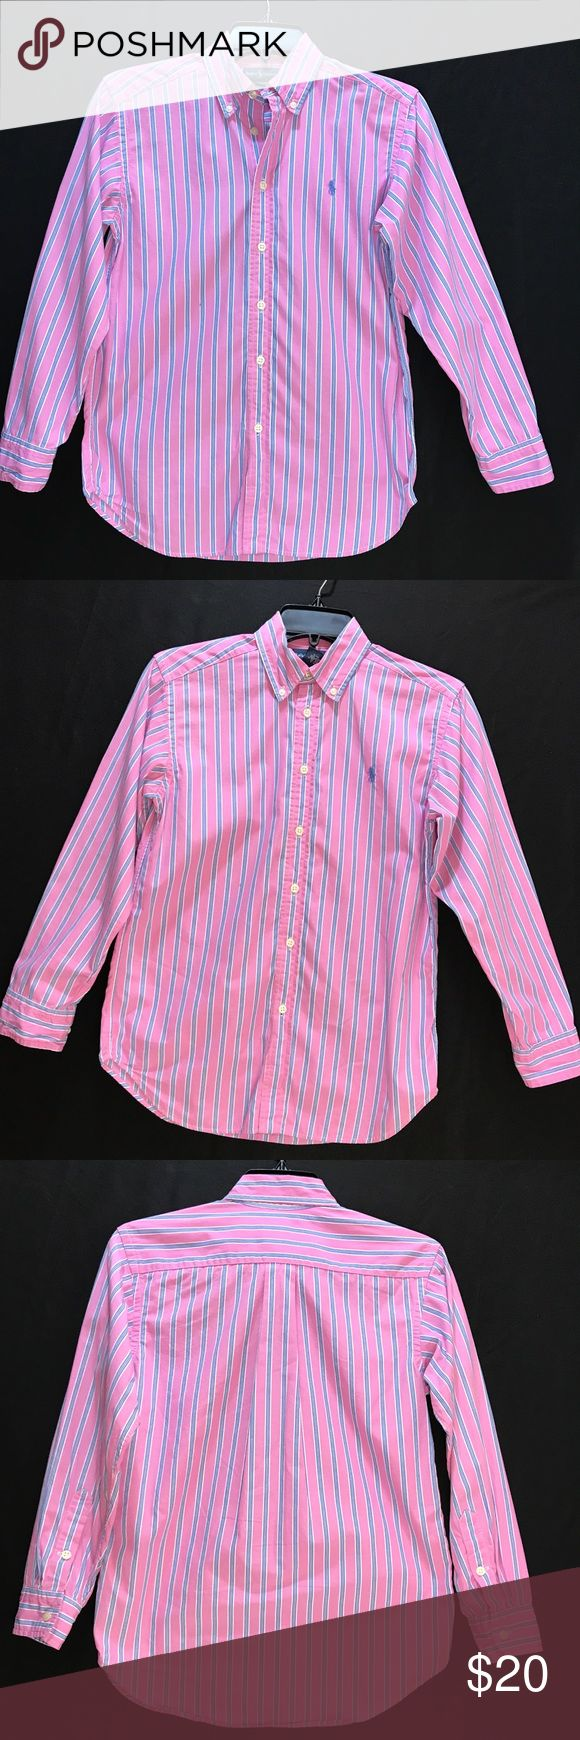 Boys Ralph Laurn shirt M (10-12) Boys Ralph Laurn shirt M (10-12) fits 10-12 year old Ralph Lauren Shirts & Tops Button Down Shirts